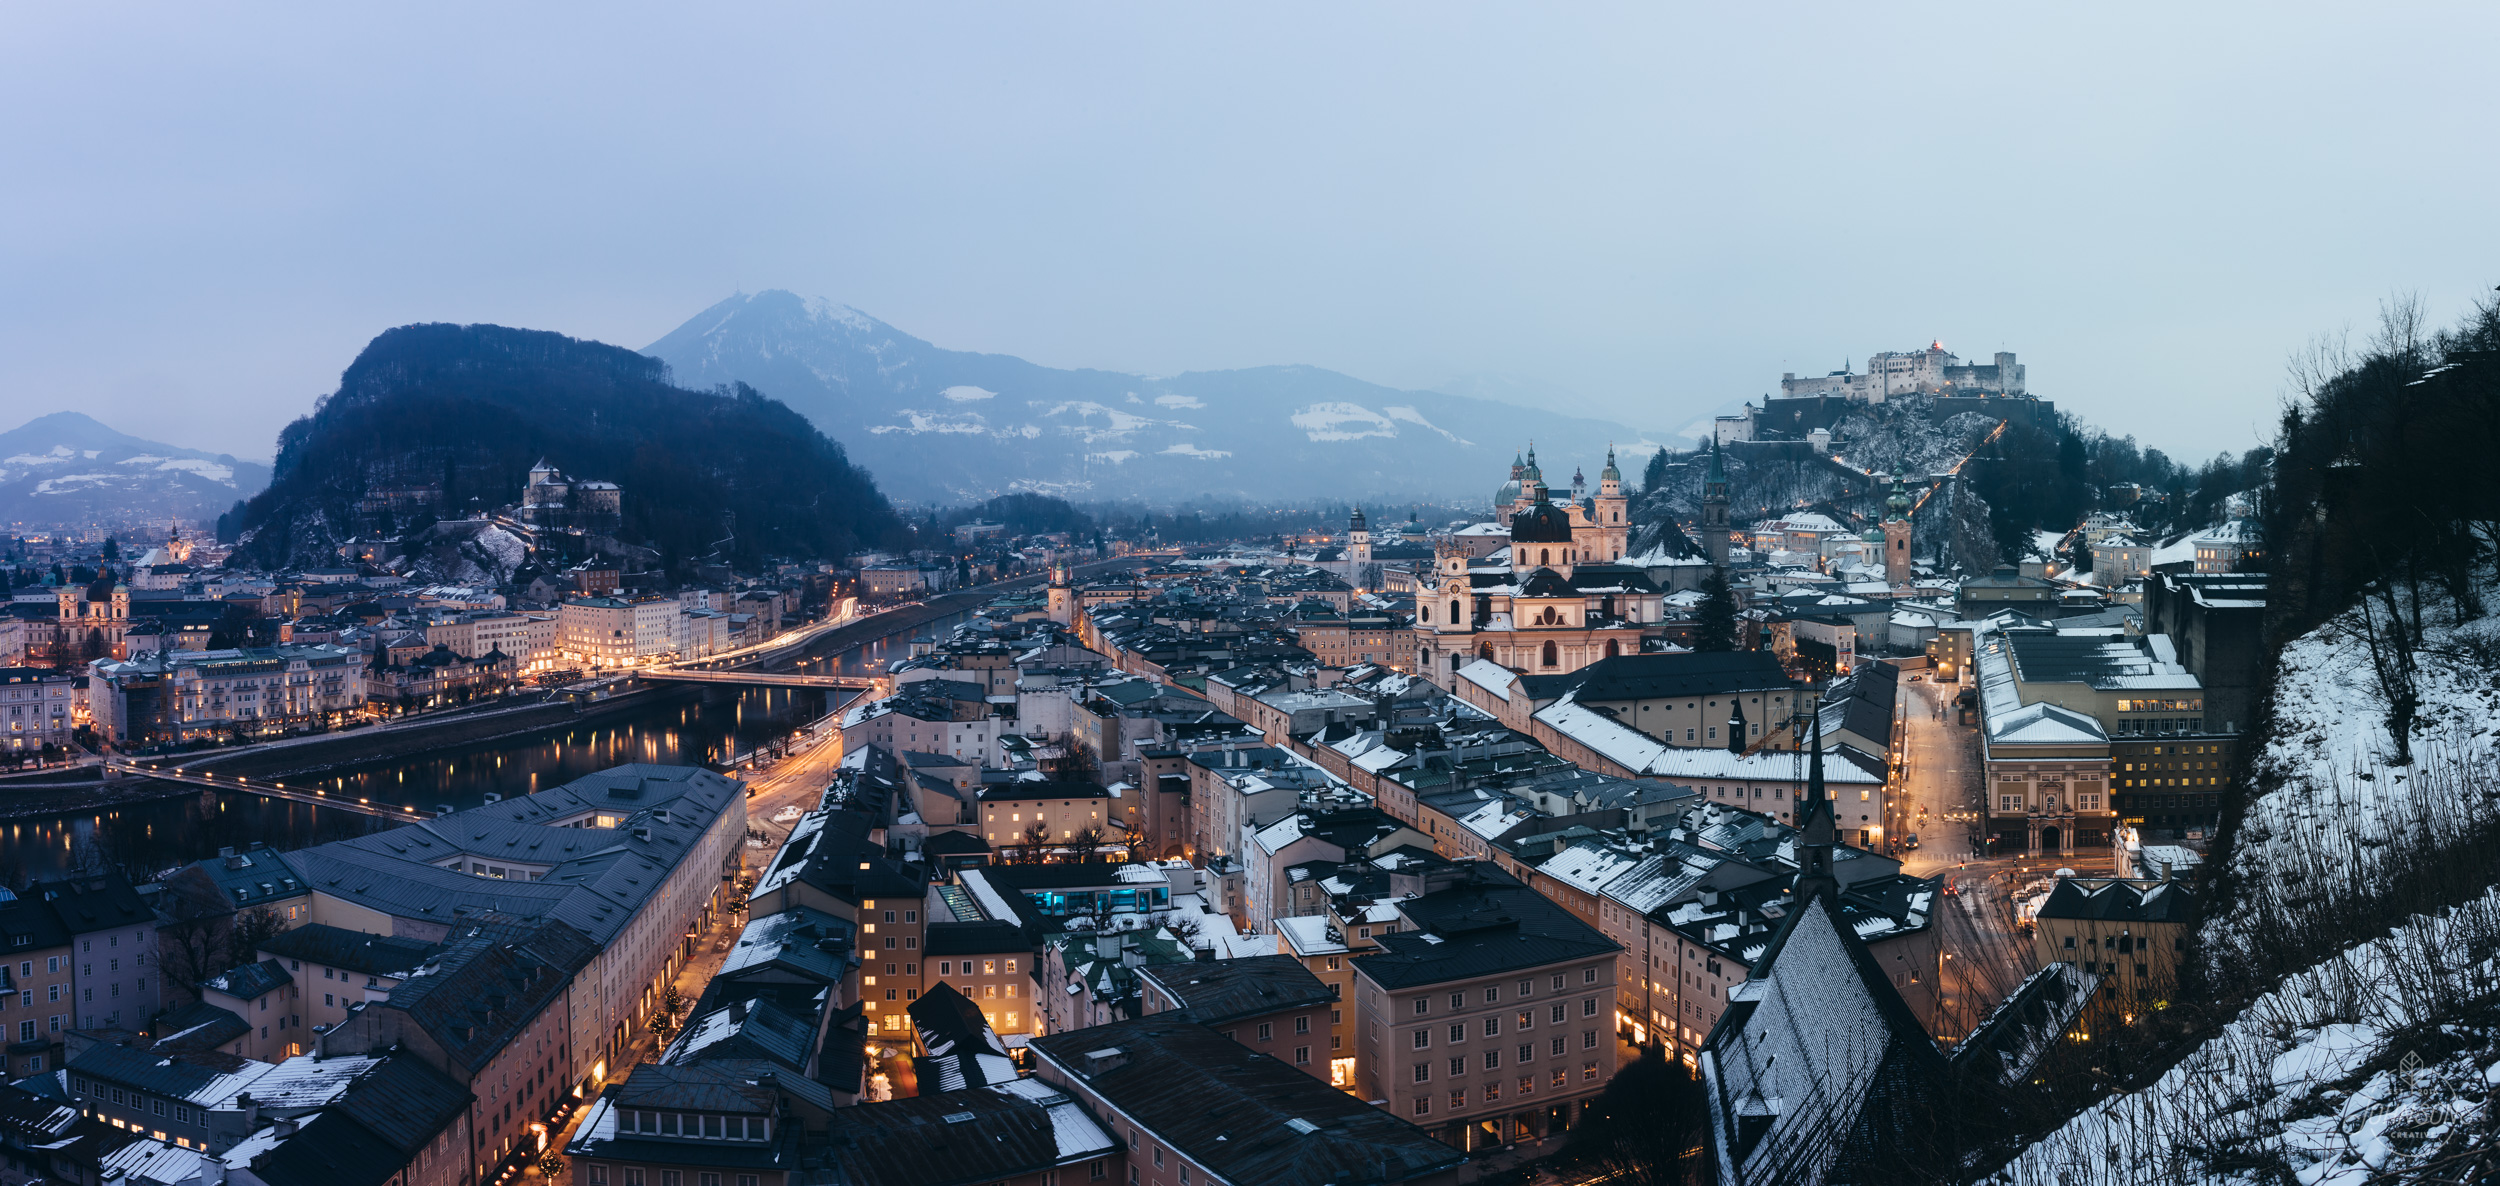 Sony a7rii  35mm 2.8  f18   13 sec  ISO 50   5 image stitched panoramic    This is a pretty classic view of Salzburg from Museum Der Moderne Salzburg. You can walk here from the Fortress on a few different trails, or take a lift up the mountain for a few euros.